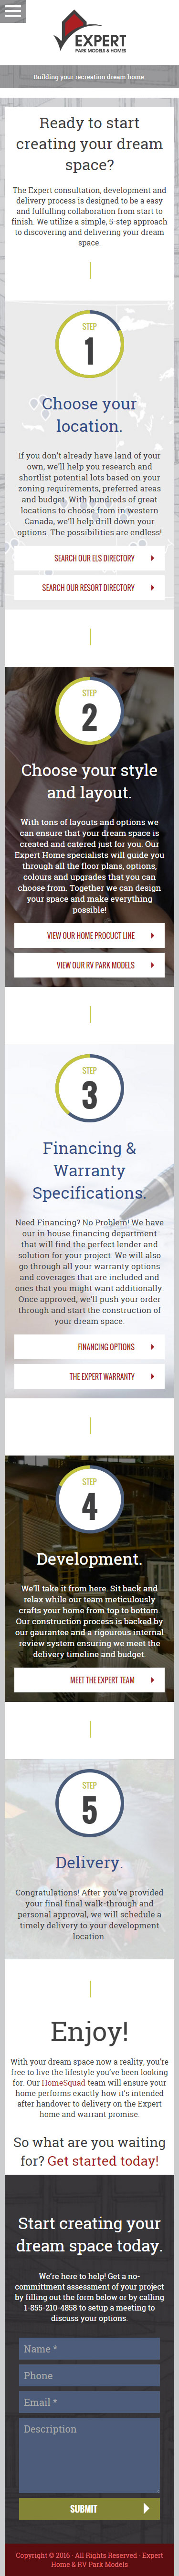 Expert Homes - Mobile Sales Process Page